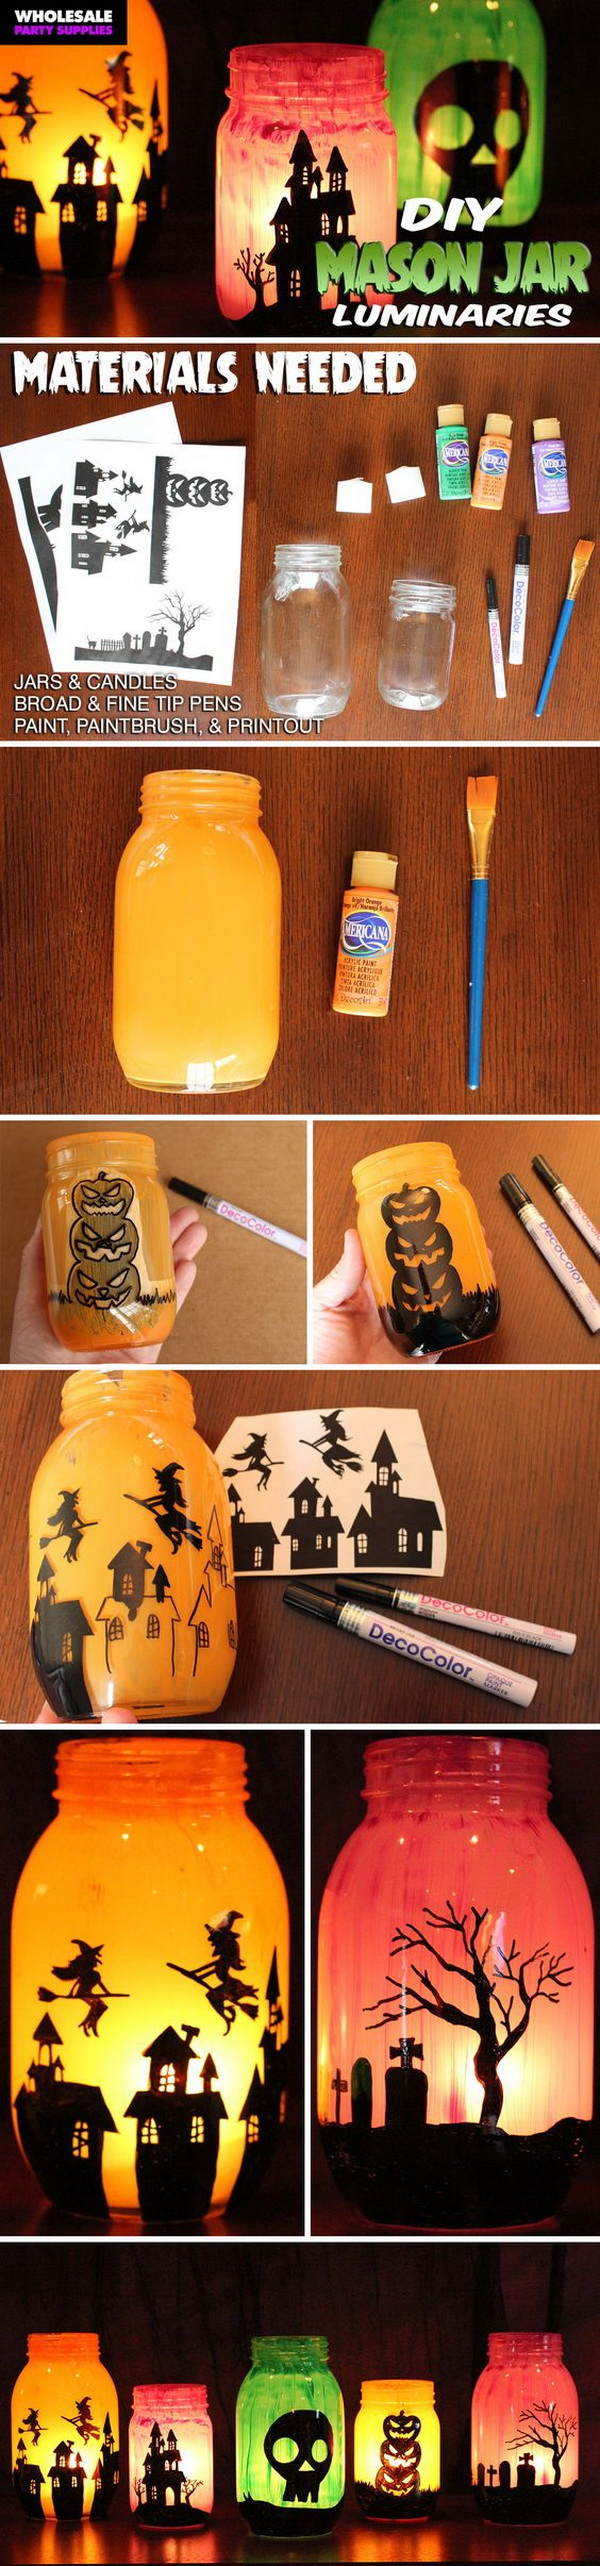 DIY Mason Jar Luminaries. Add a cute and spooky touch to your home with these haunting luminaries that decorated with free printable templates full of spooky characters. They look great either in the dark or in the light!